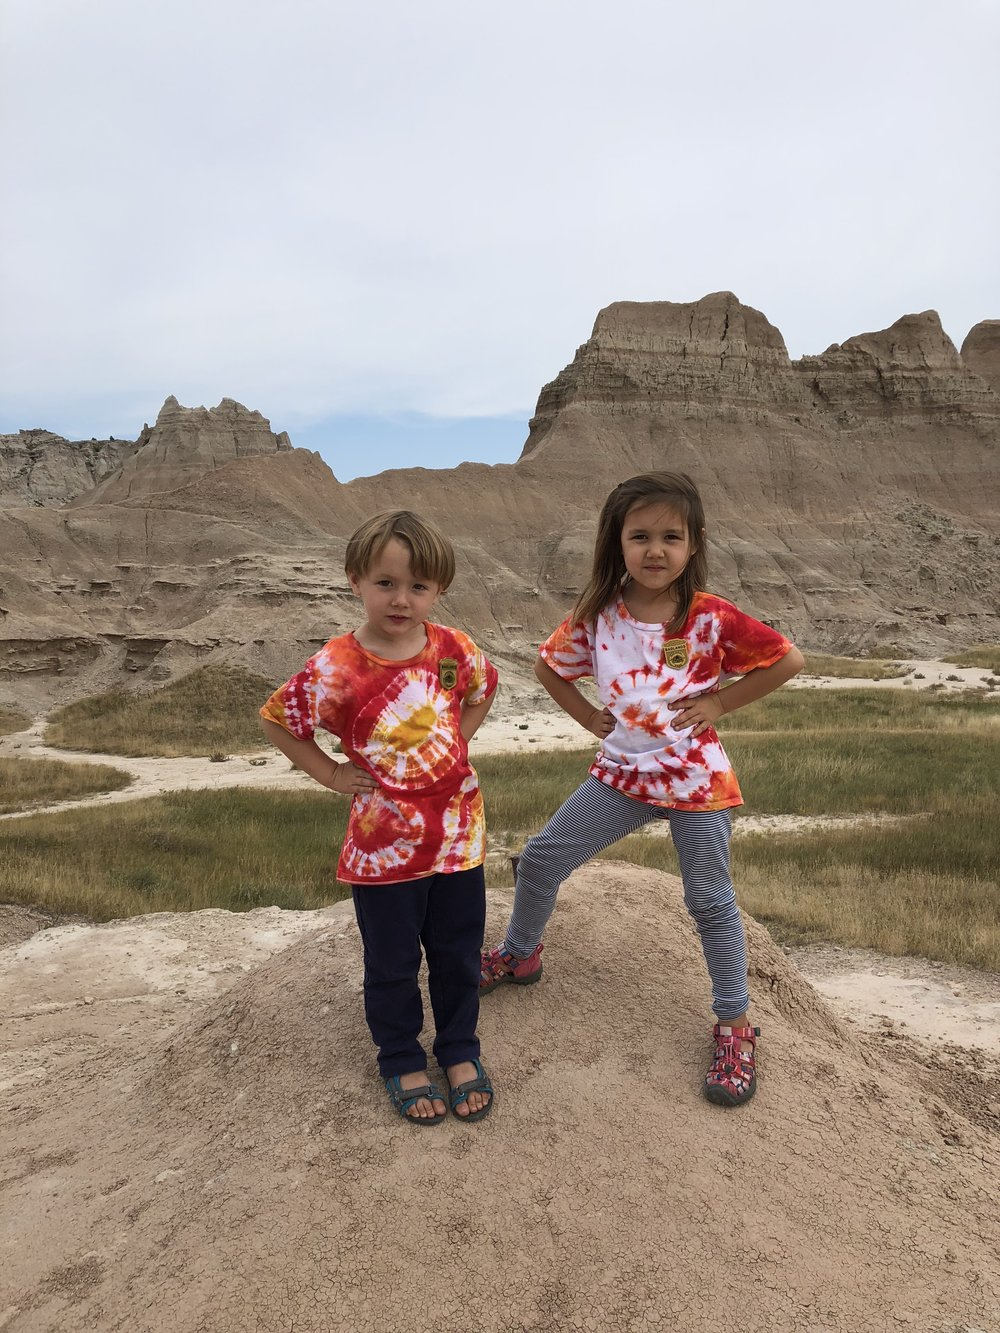 The pose you make after being named a Junior Ranger for the Badlands National Park.